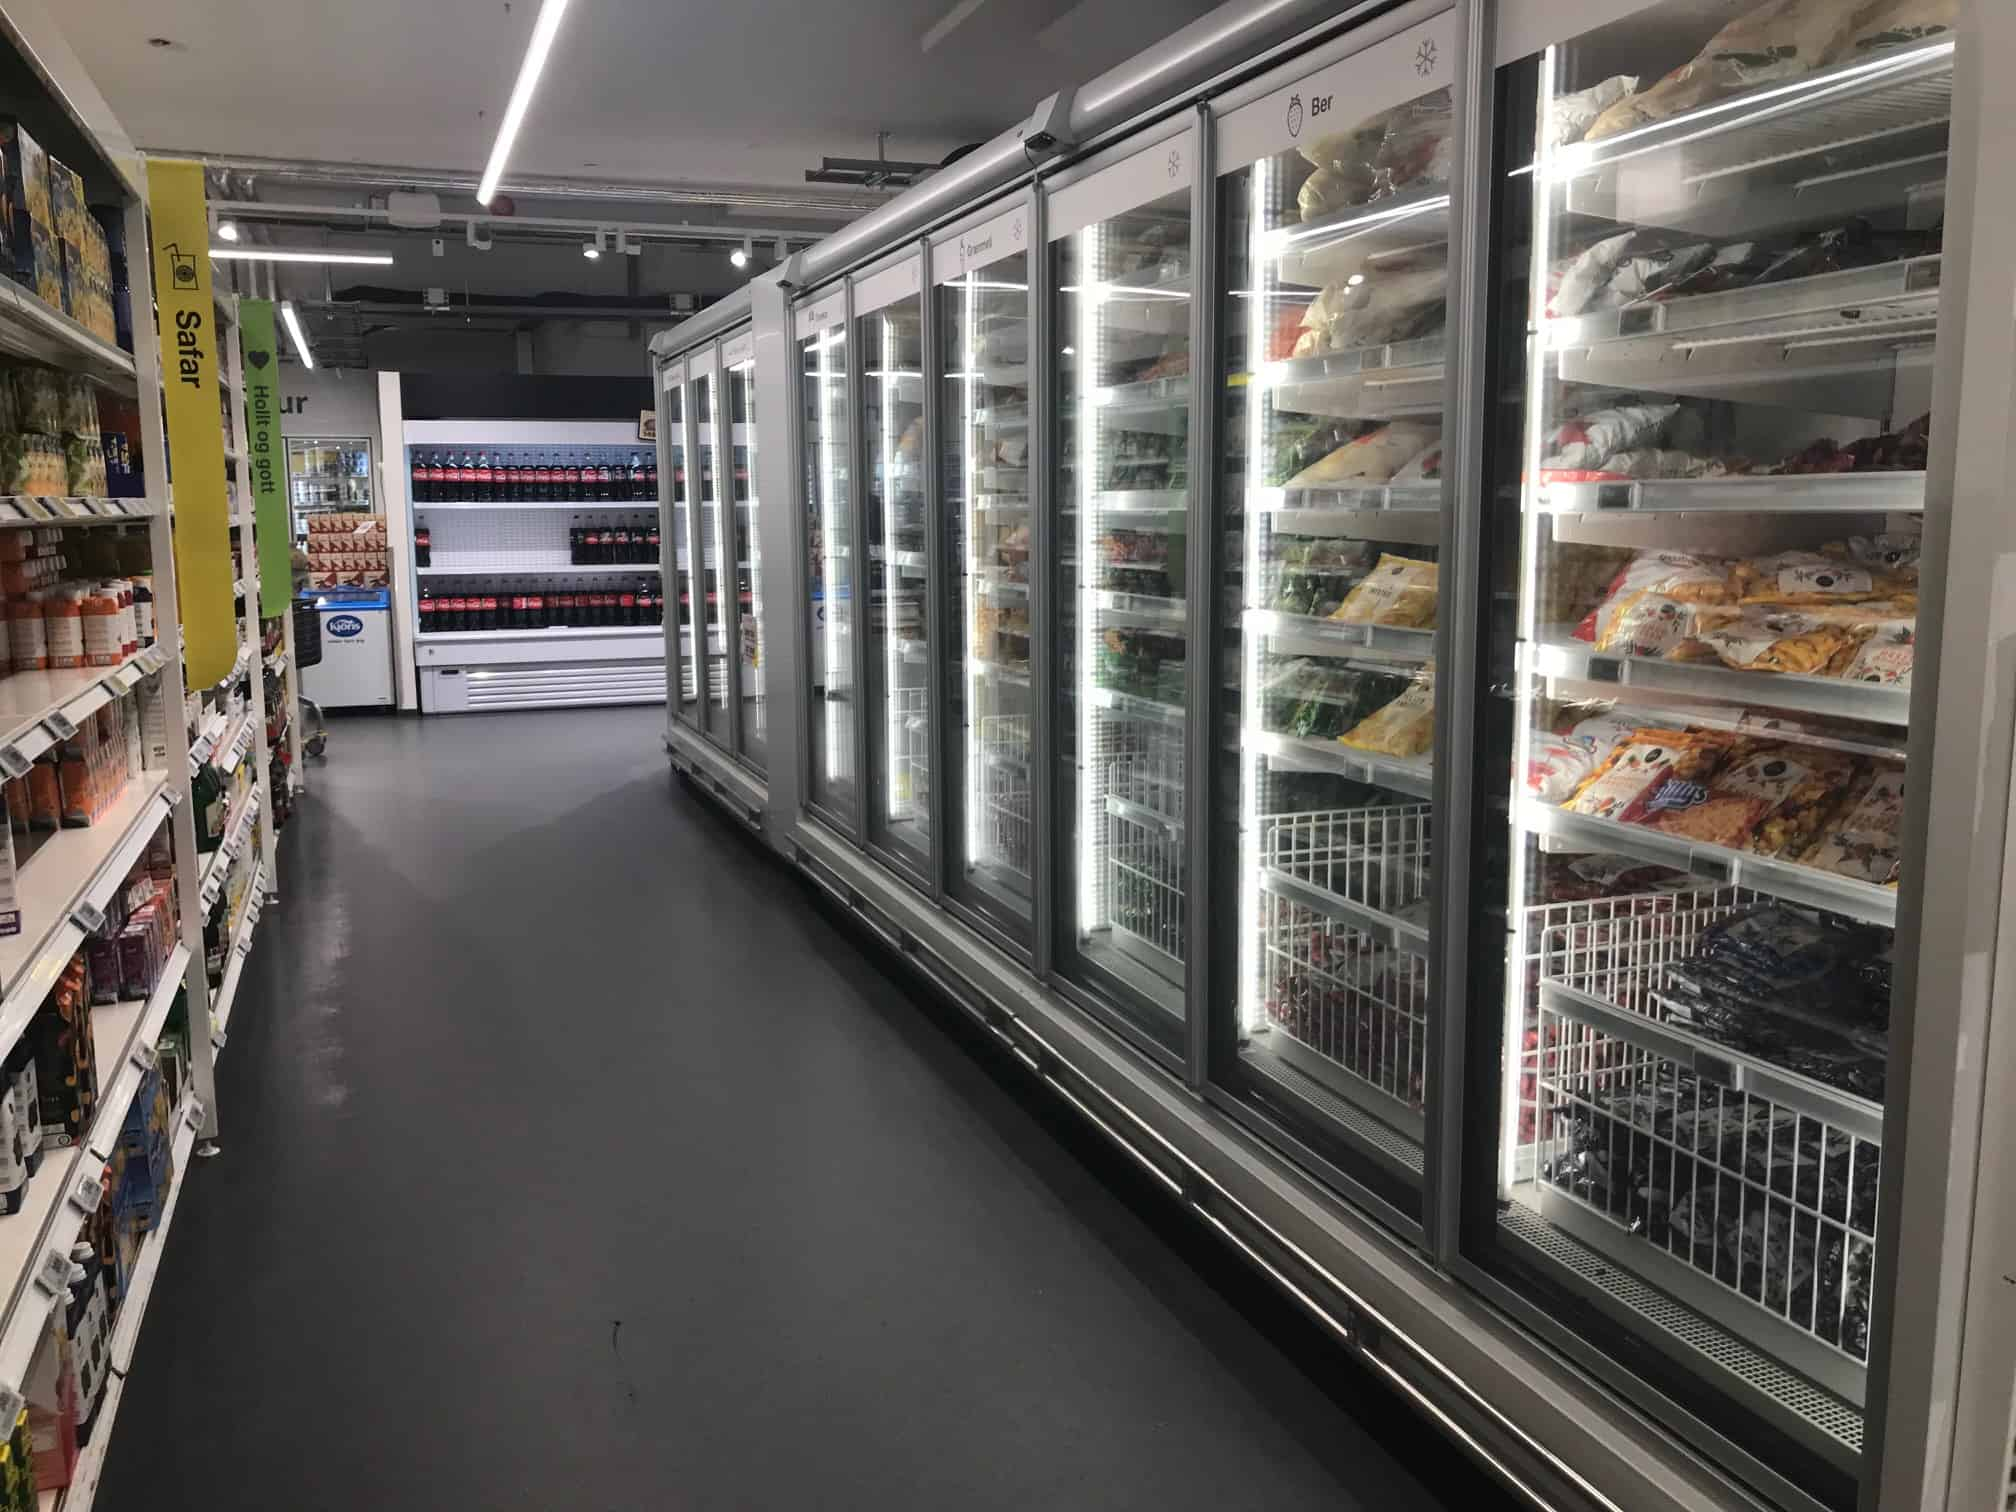 hours of operation for grocery stores in Iceland